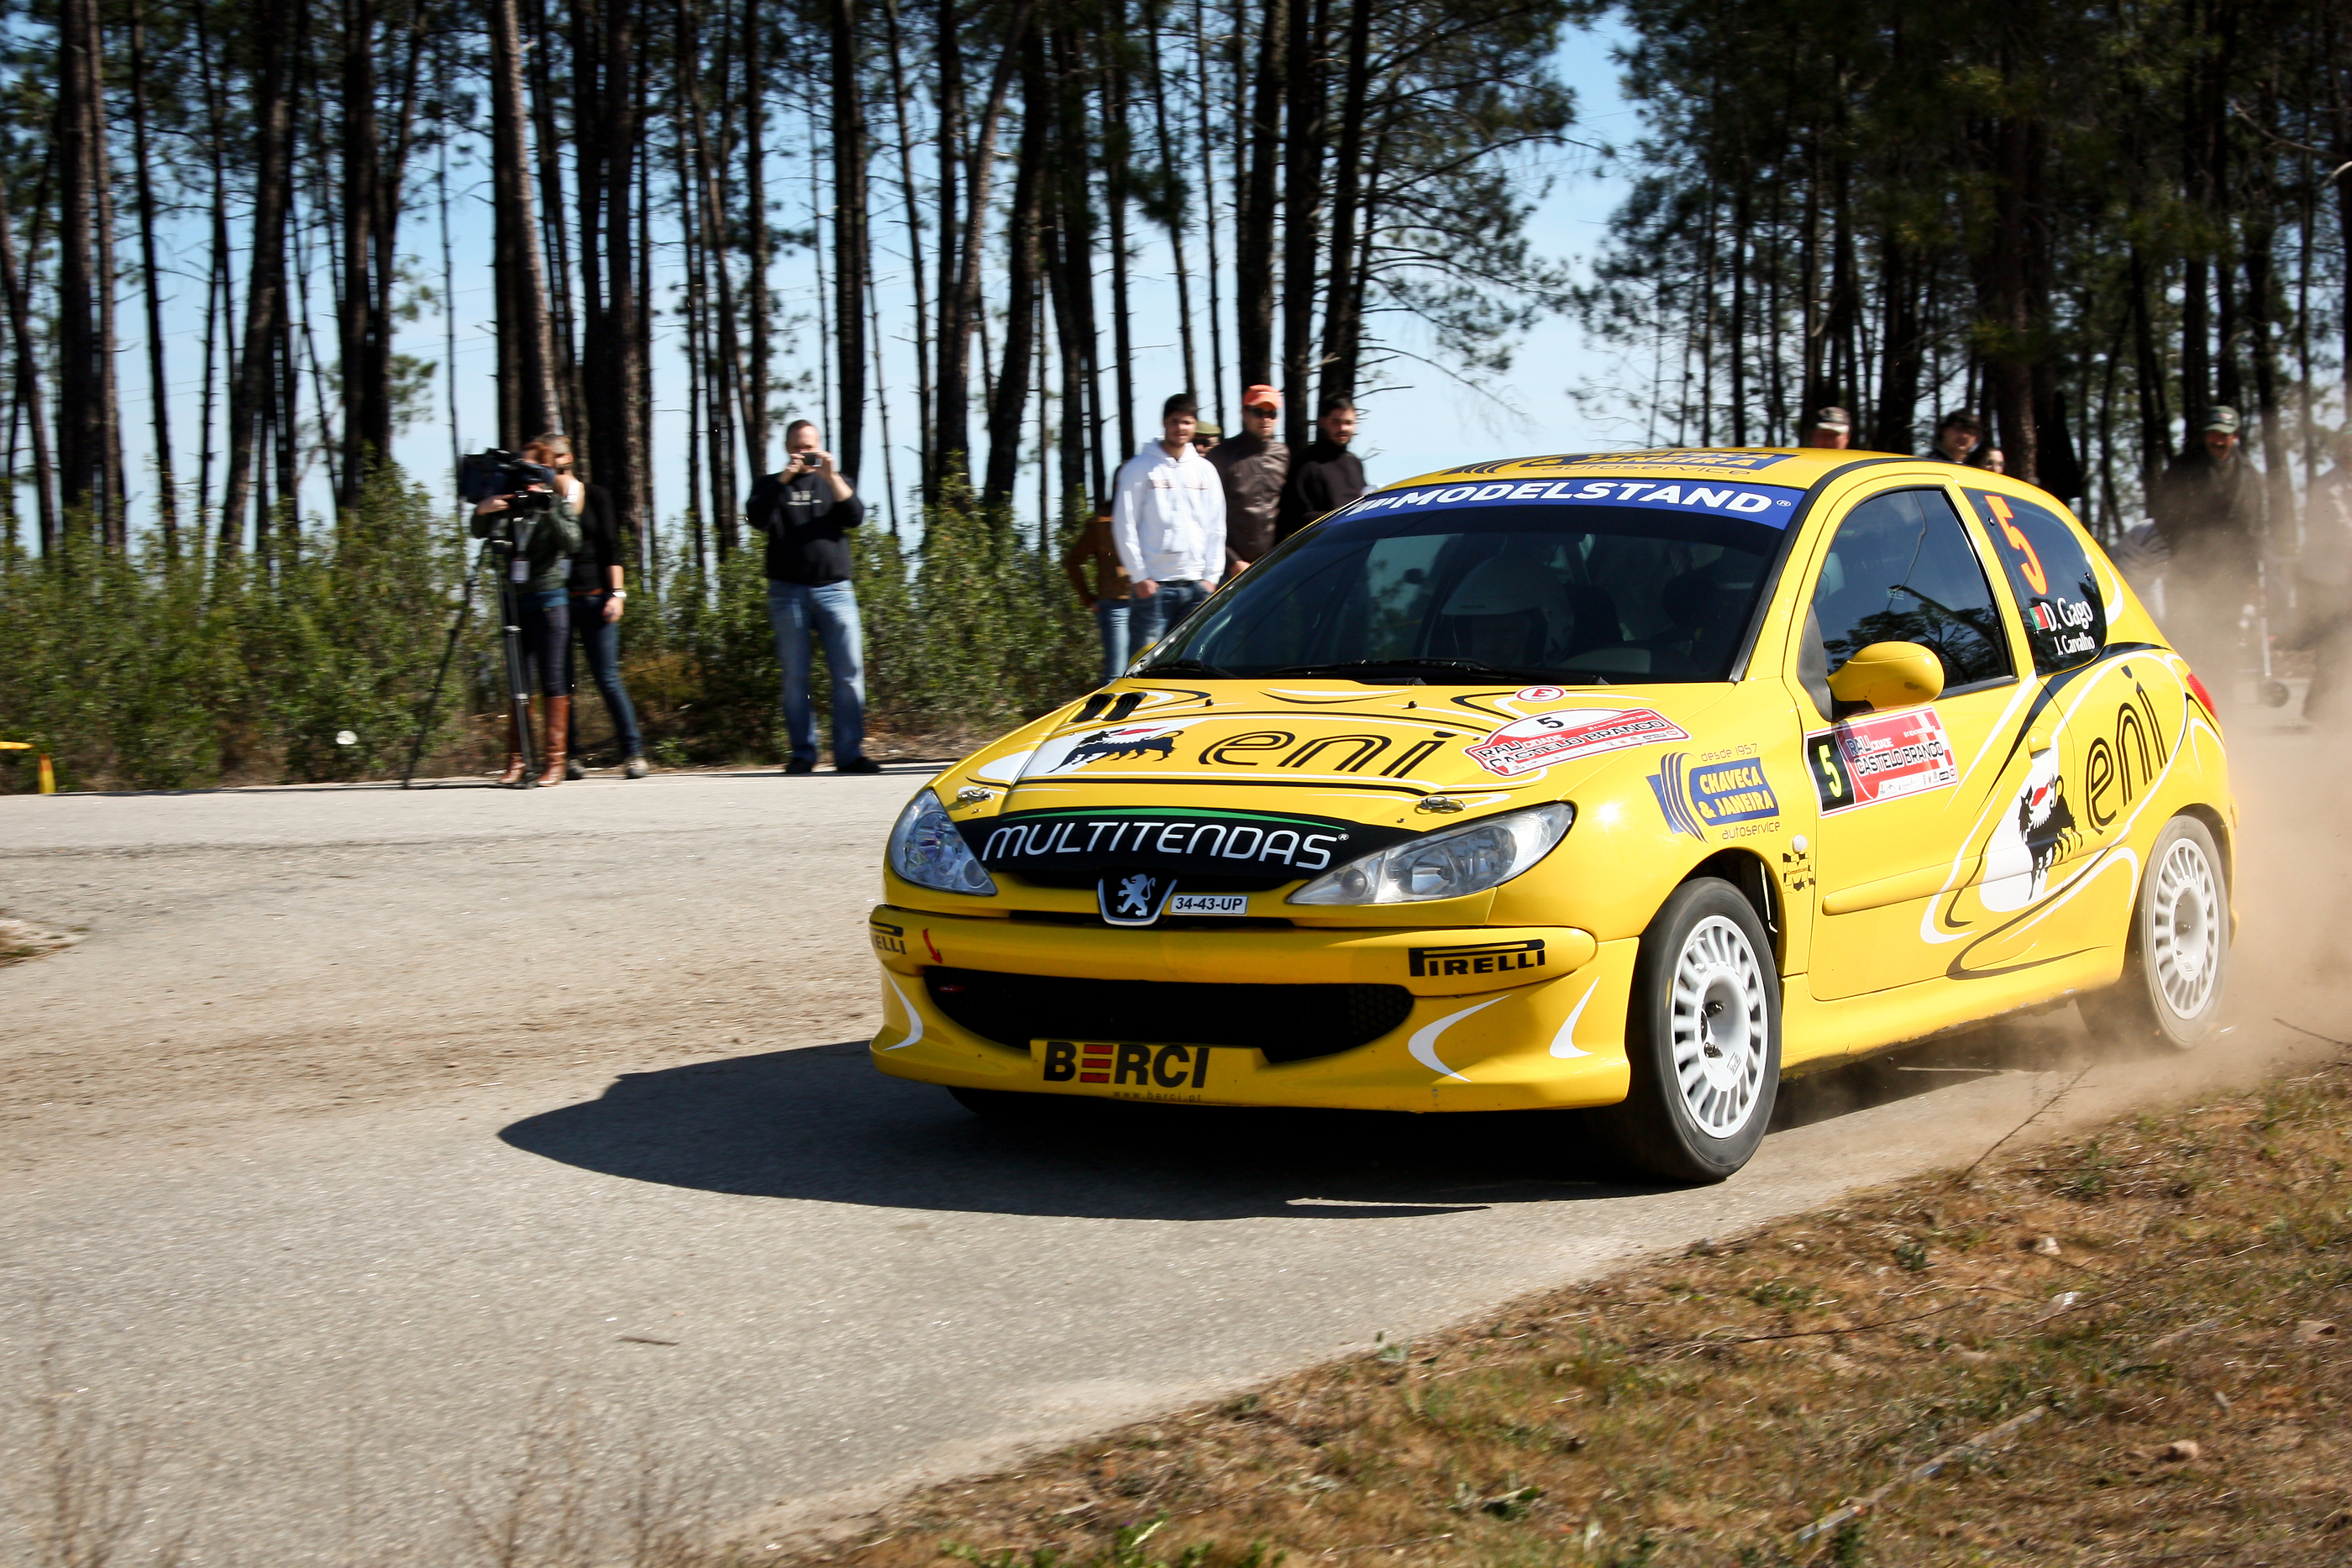 CASTELO BRANCO, PORTUGAL - MARCH 10: DIOGO GAGO DRIVES A PEUGEOT 206 GTI DURING RALLY CASTELO BRANCO BY COISAX